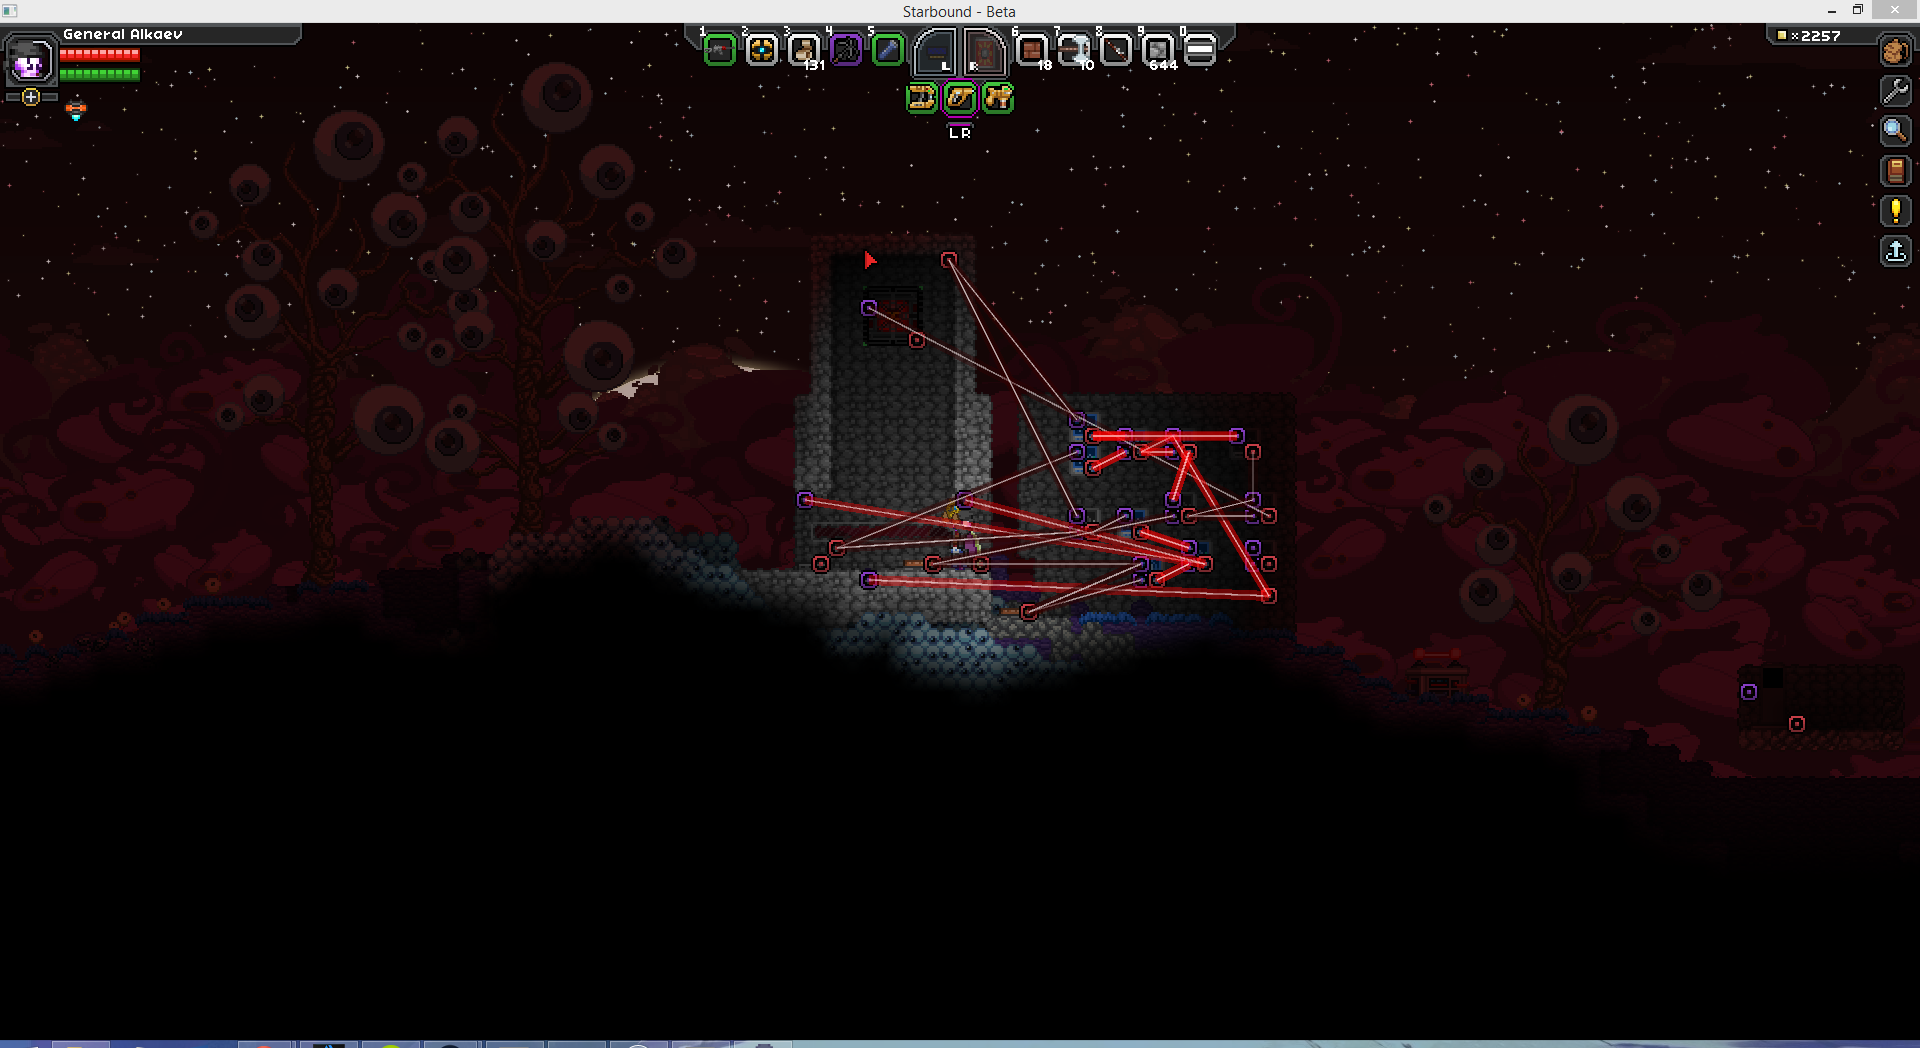 Wiring Station In Starbound Outdated Lava Spawner Chucklefish Forums Creates A Wired Operated Great For Building Traps Can Be Crafted At Your